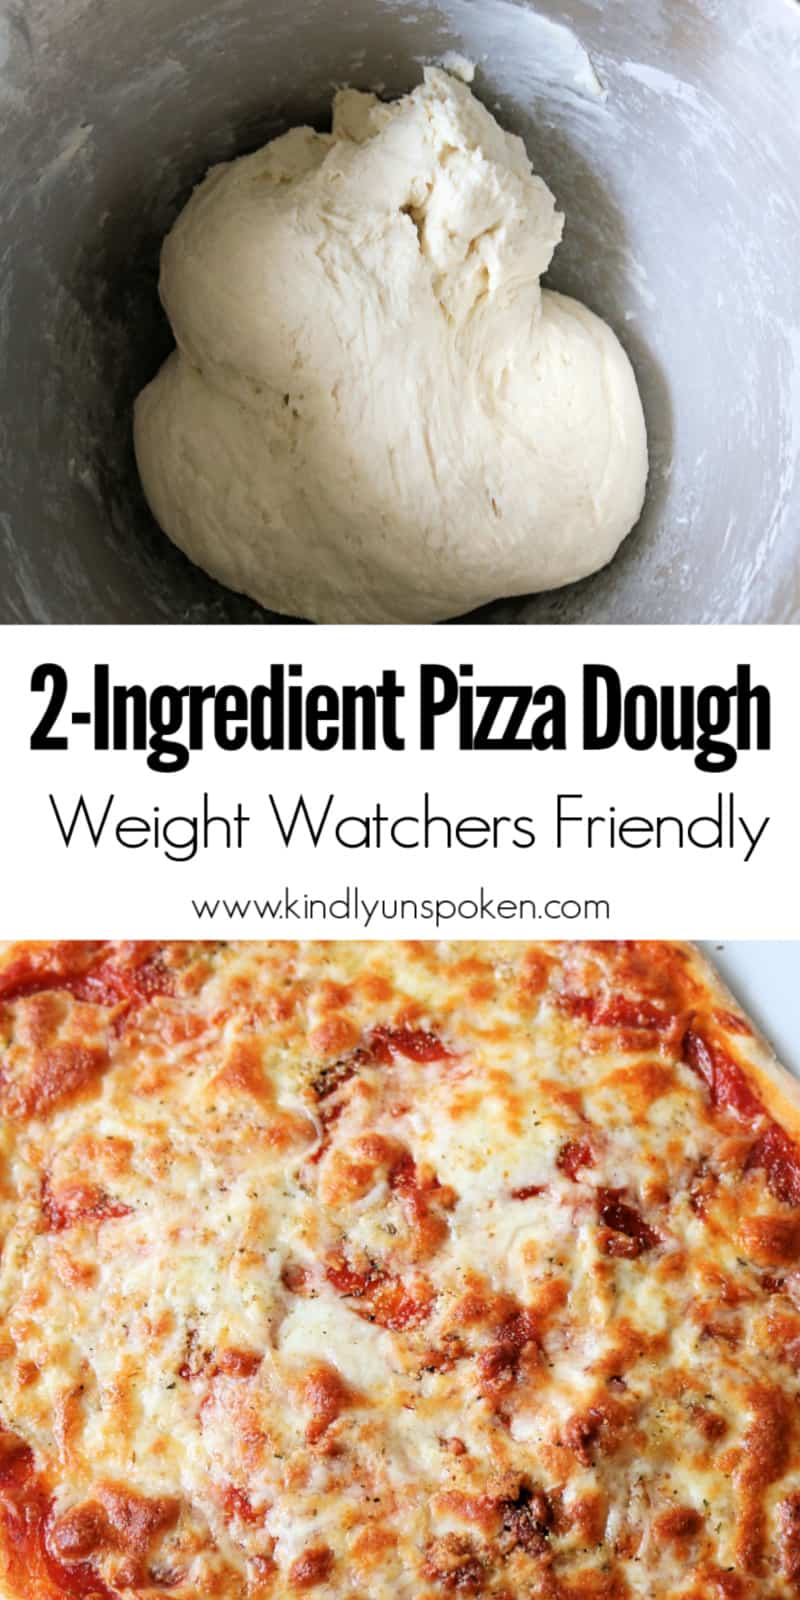 This 2-Ingredient Pizza Dough, also known as Weight Watchers Pizza Dough, is delicious and SO easy to make! It's made with self-rising flour and plain, non-fat Greek yogurt, with no yeast or rising time required. Use it for pizza dough, cheese sticks, pretzel bites, and more! #pizzadough #pizza #weighwatchers #greekyogurtpizzadough #selfrisingdough